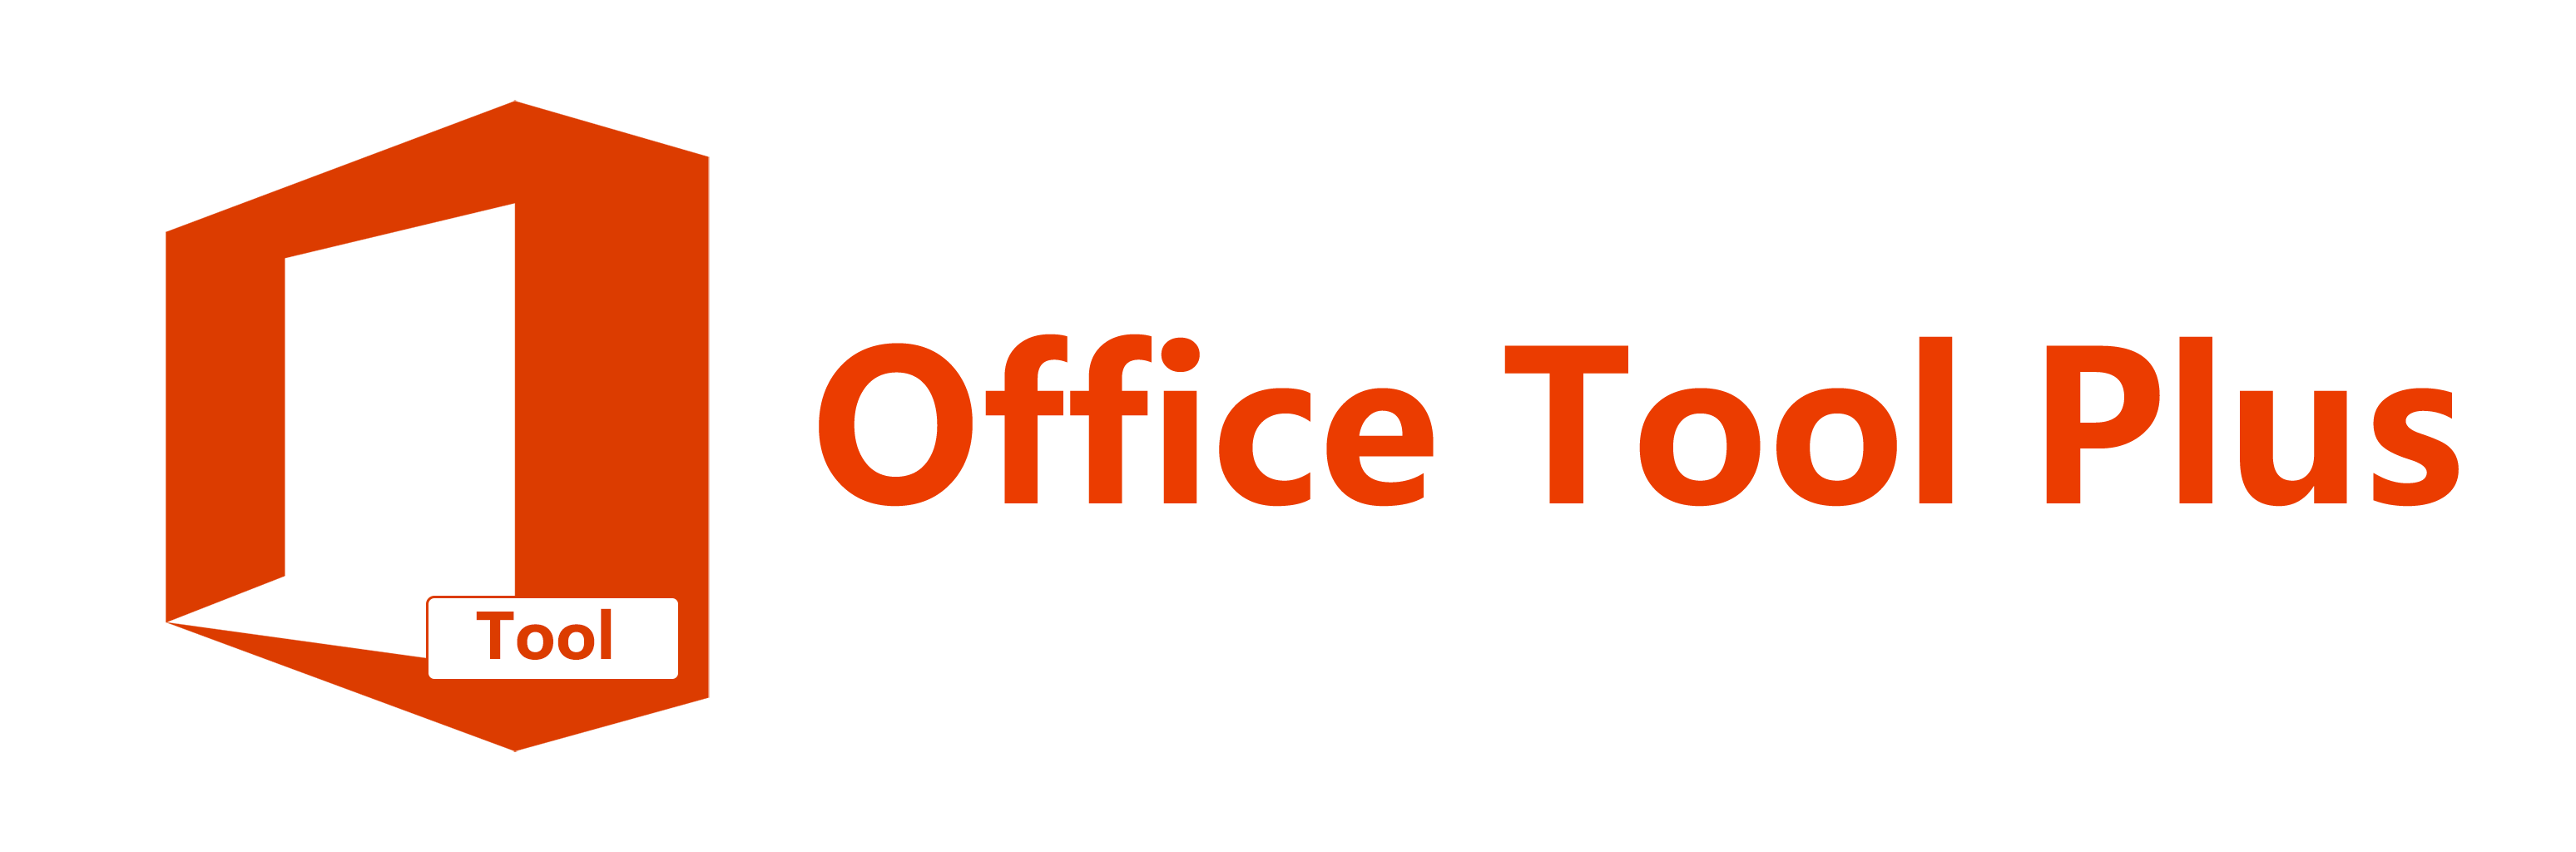 Office Tools Plus – 一站式安装/激活/管理 Office 全家桶小工具